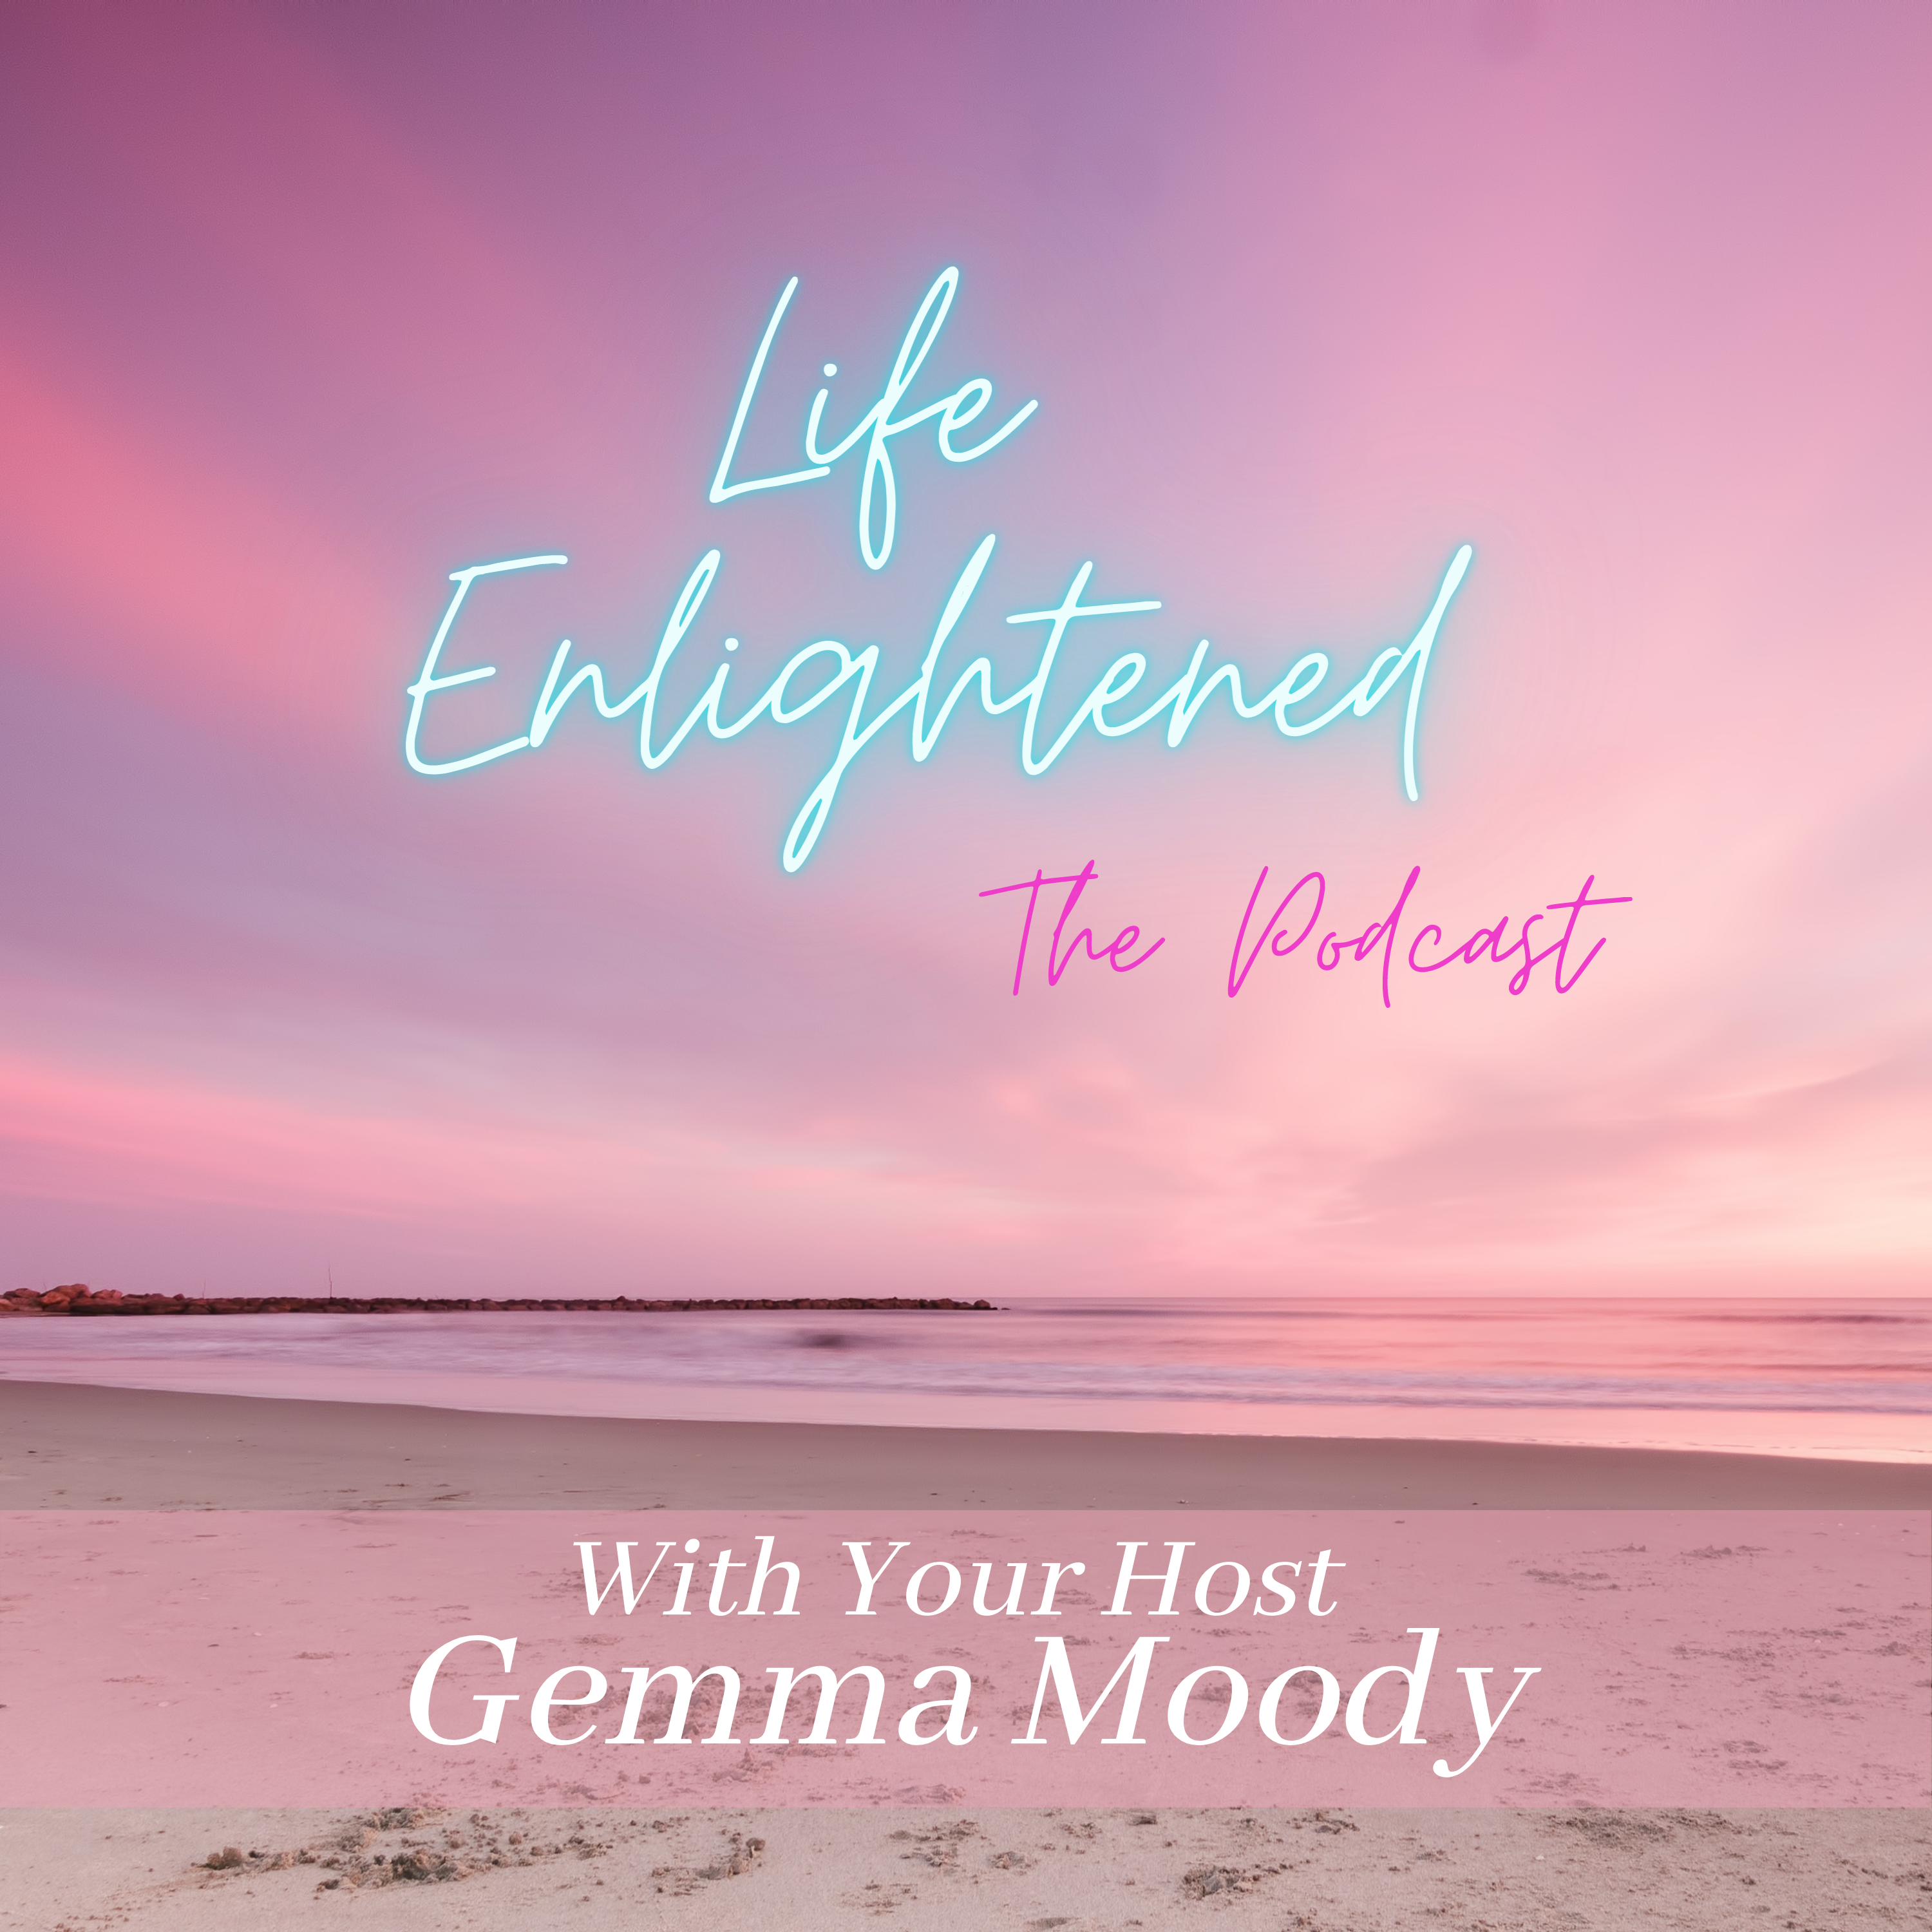 Life Enlightened: The Podcast